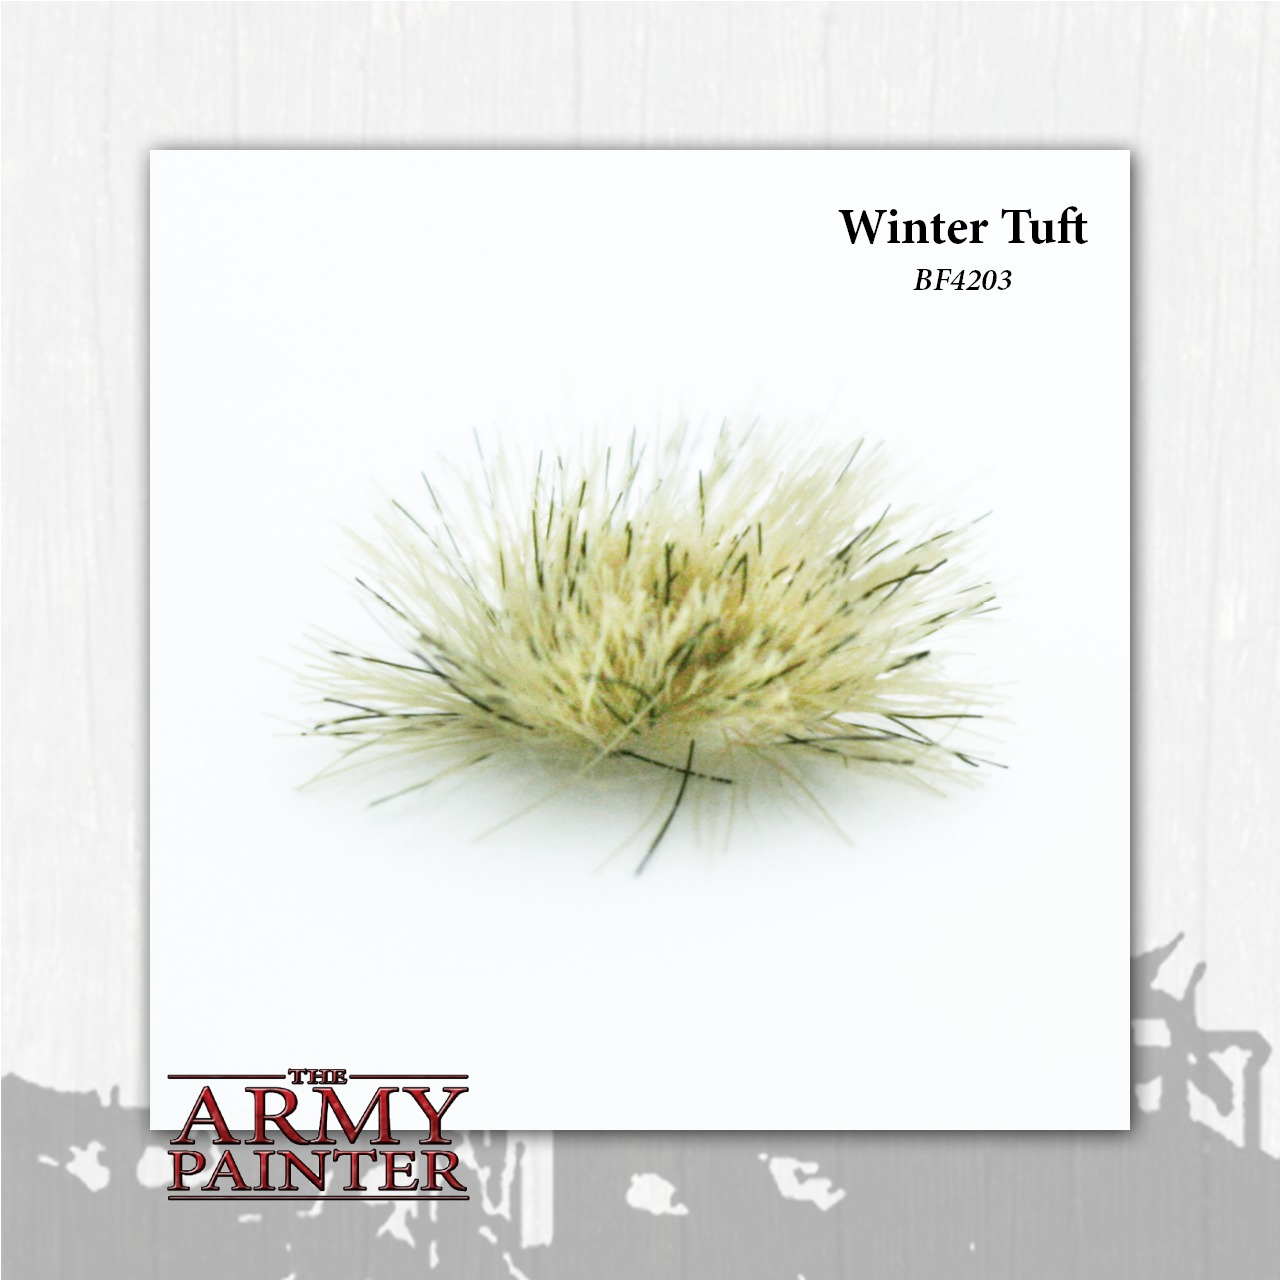 Army Painter Winter Tuft (2016) image